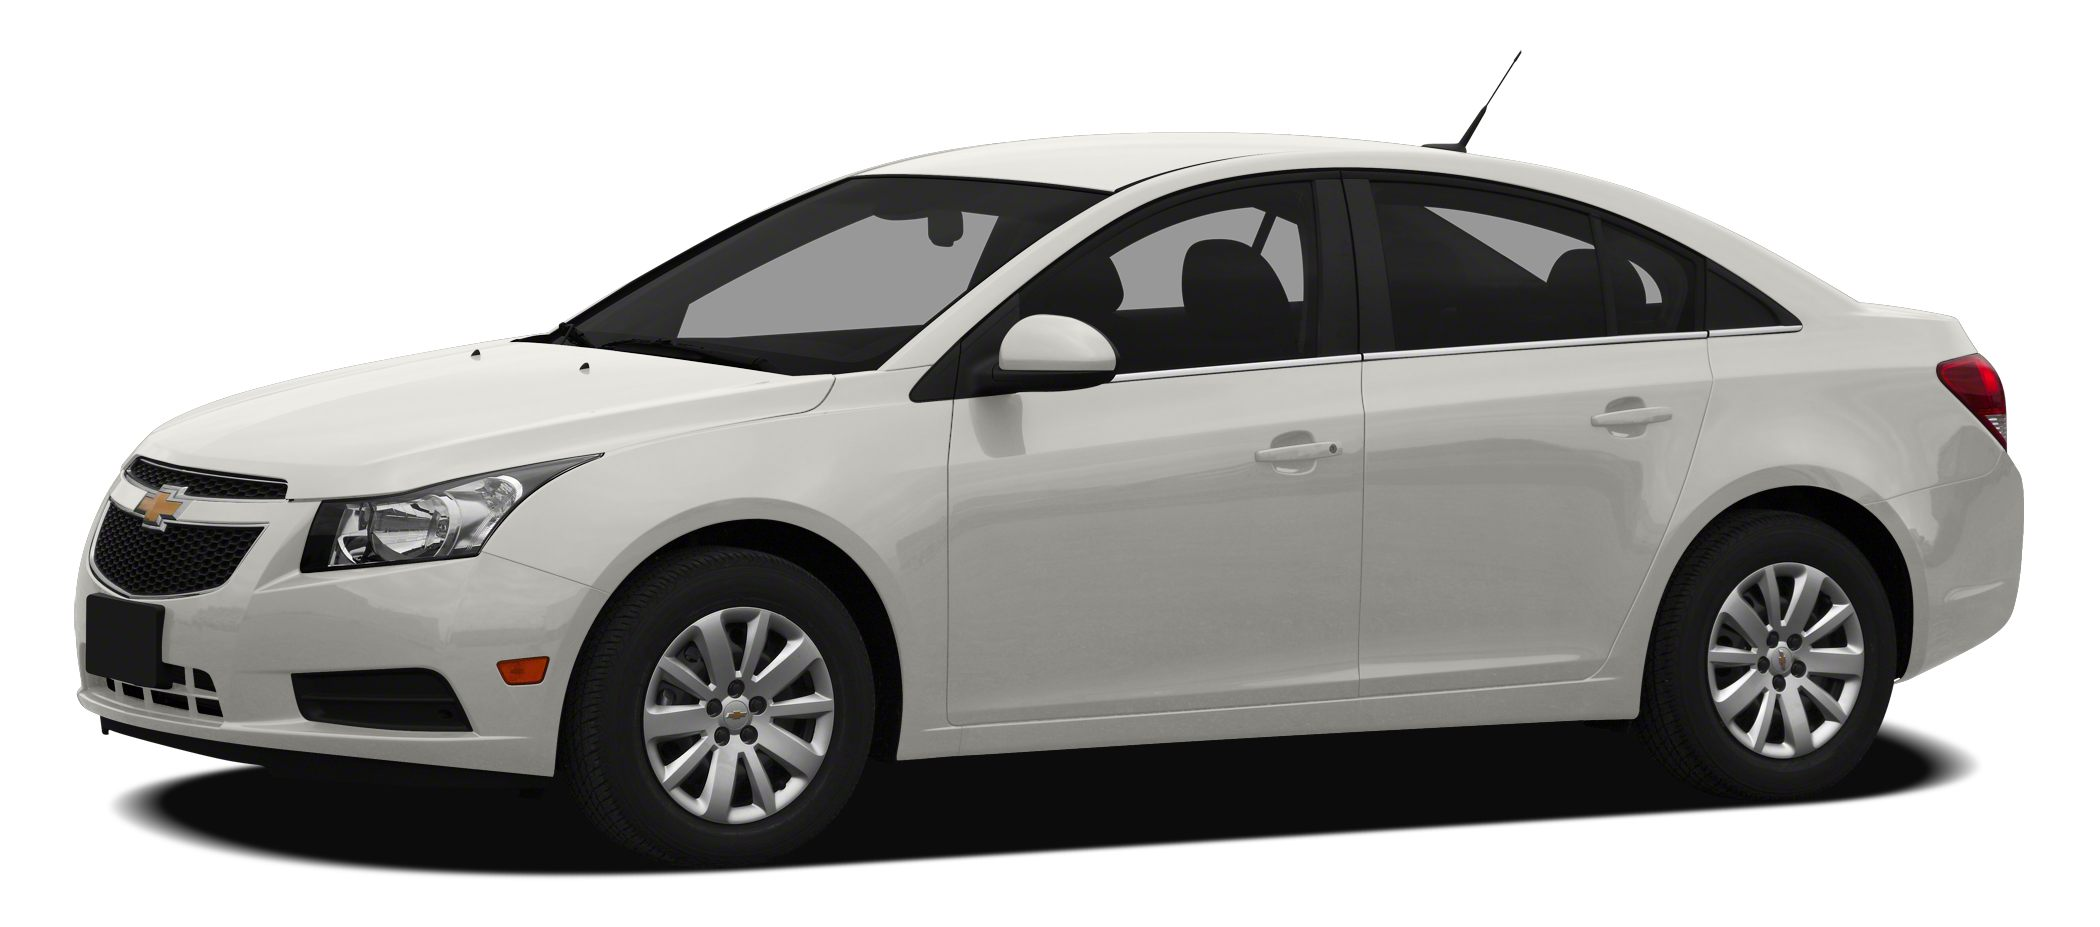 2012 Chevrolet Cruze LTZ Never worry about safety on your commute with anti-lock brakes parking a